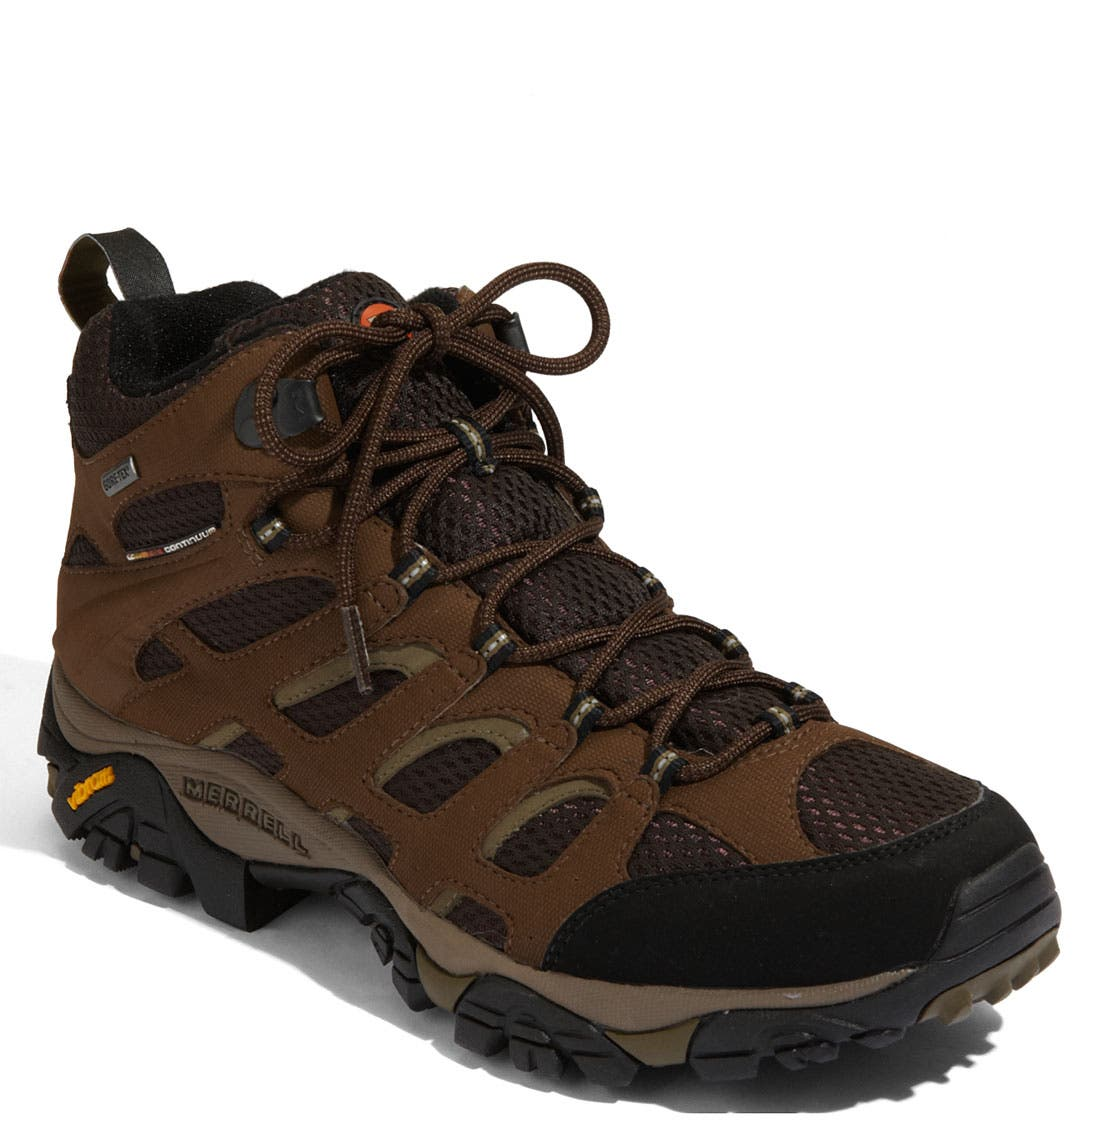 Main Image - Merrell 'Moab Mid Gore-Tex® XCR' Hiking Boot (Men)